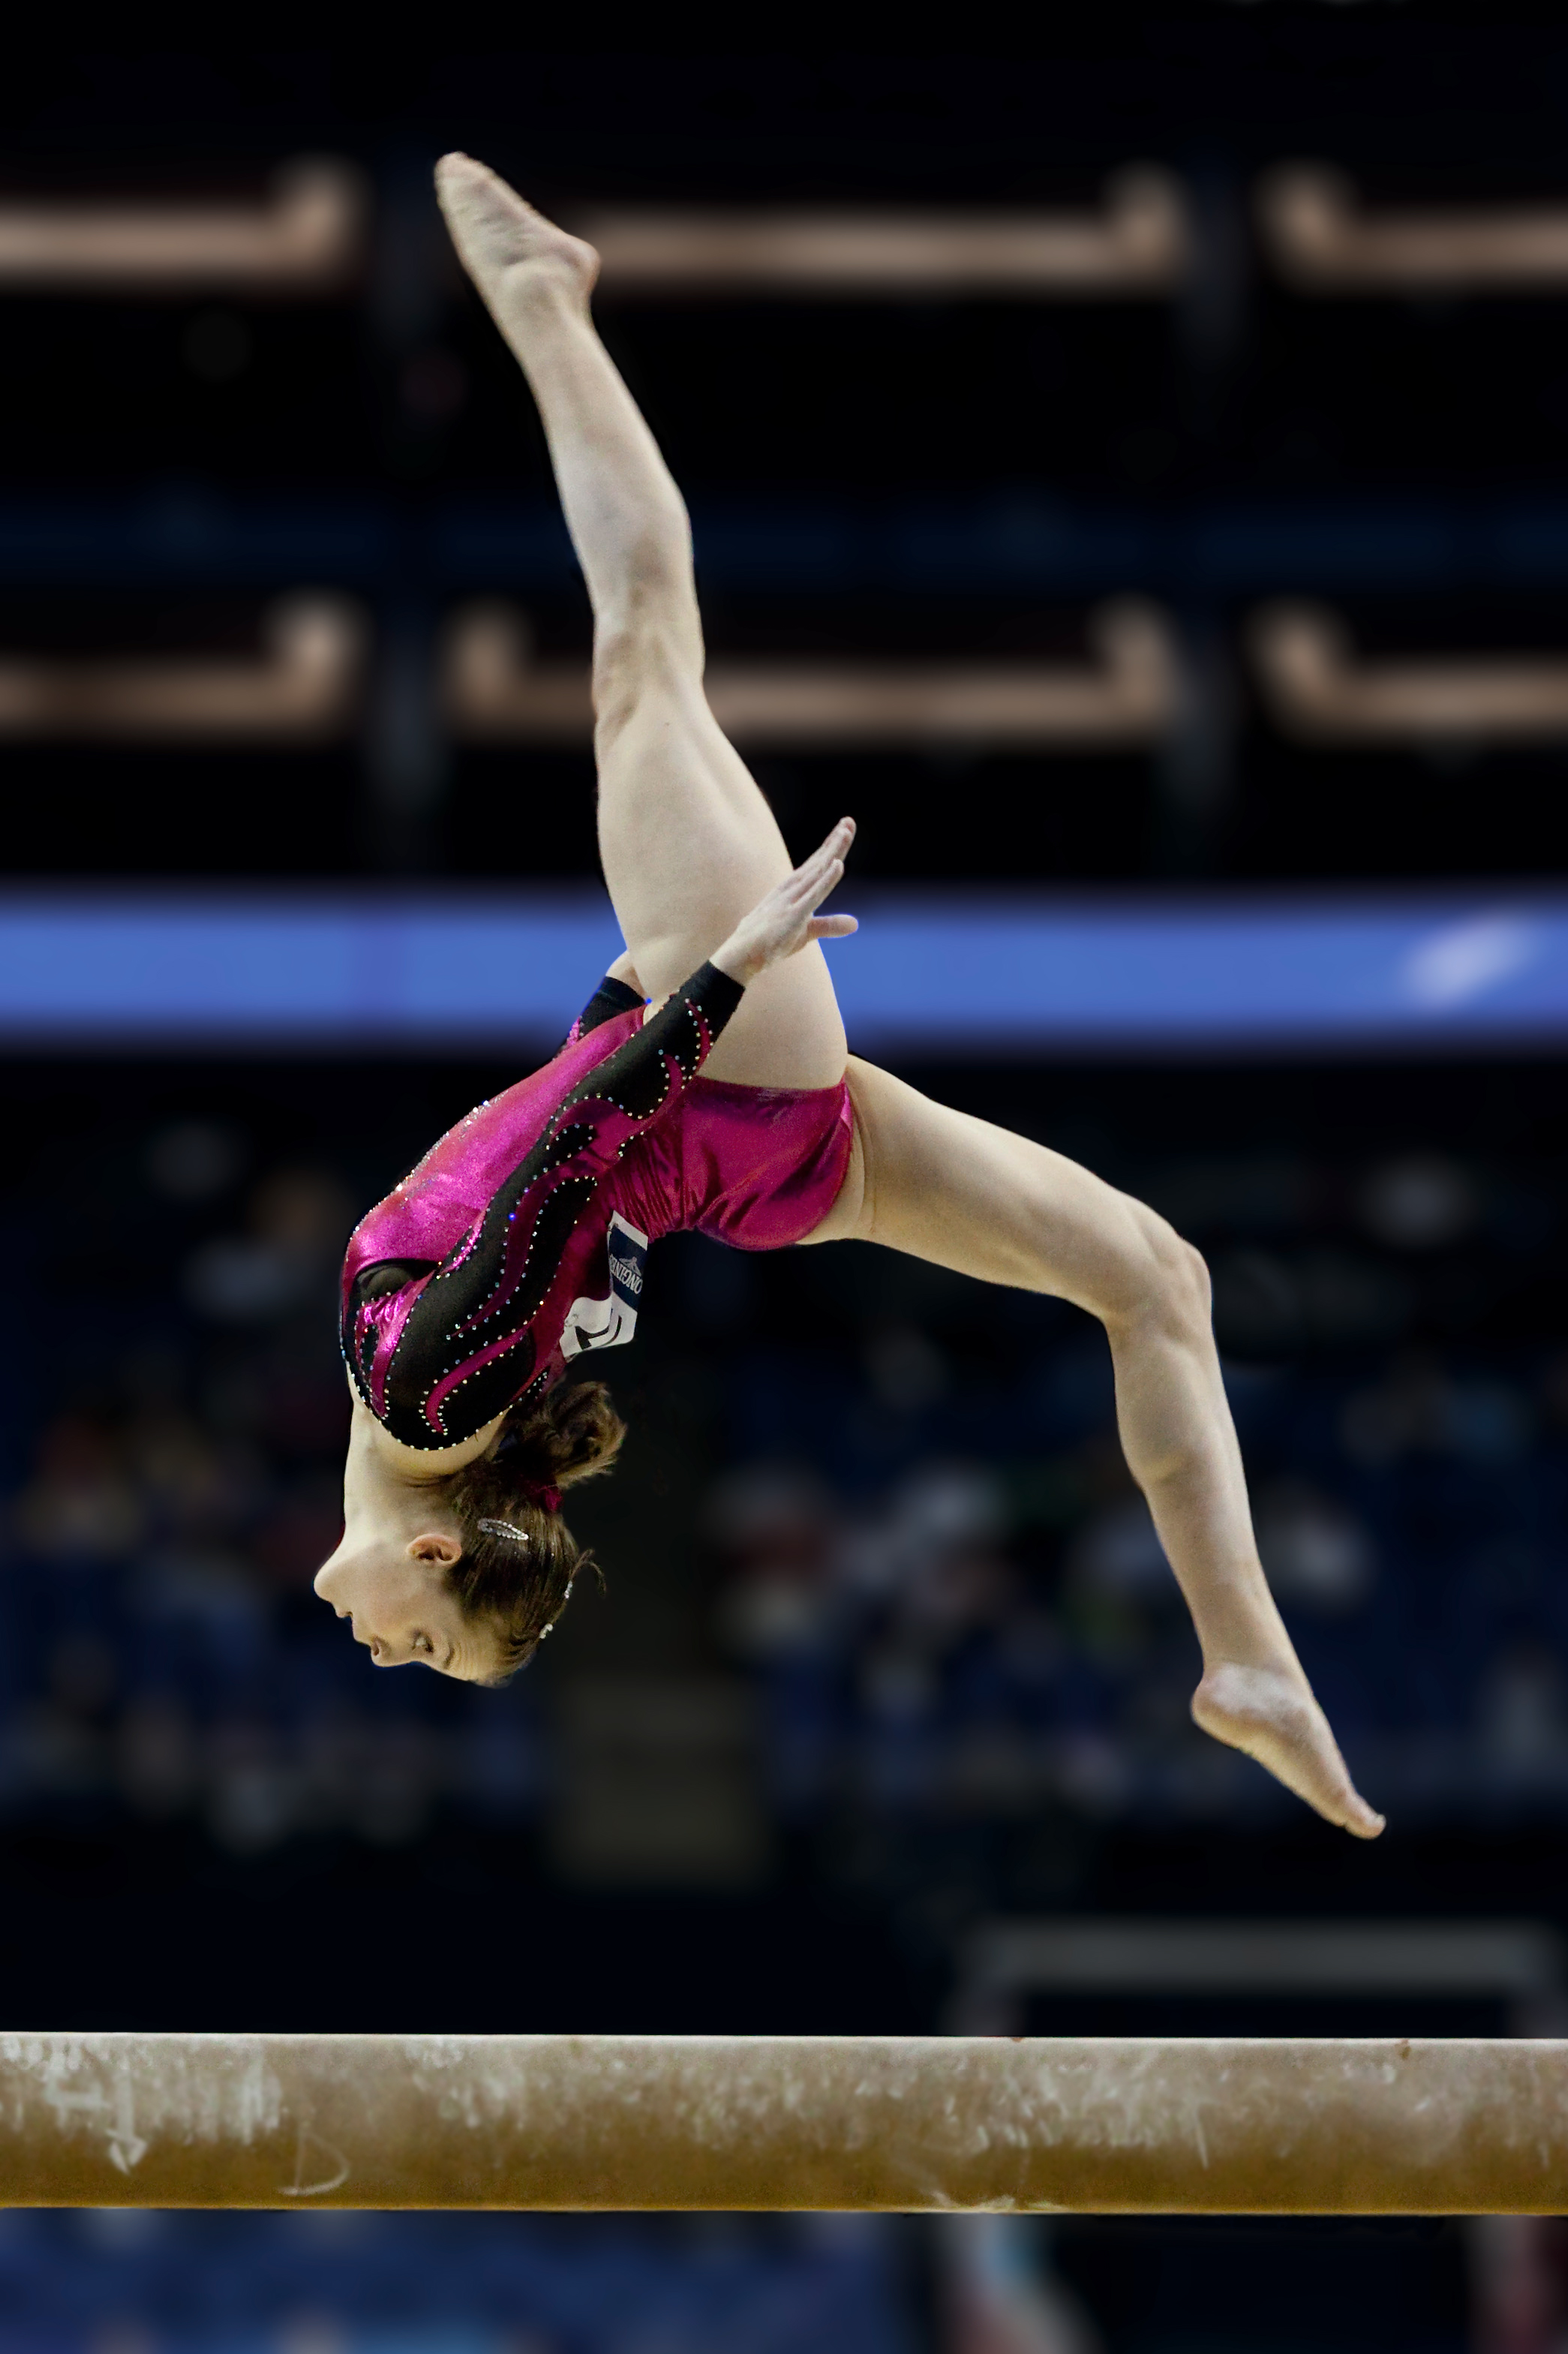 Australian artistic gymnast, Lauren Mitchell, performing a layout step-out on the balance beam during the 41st World Artistic Gymnastics Championships in London, United Kingdom, in 2009.